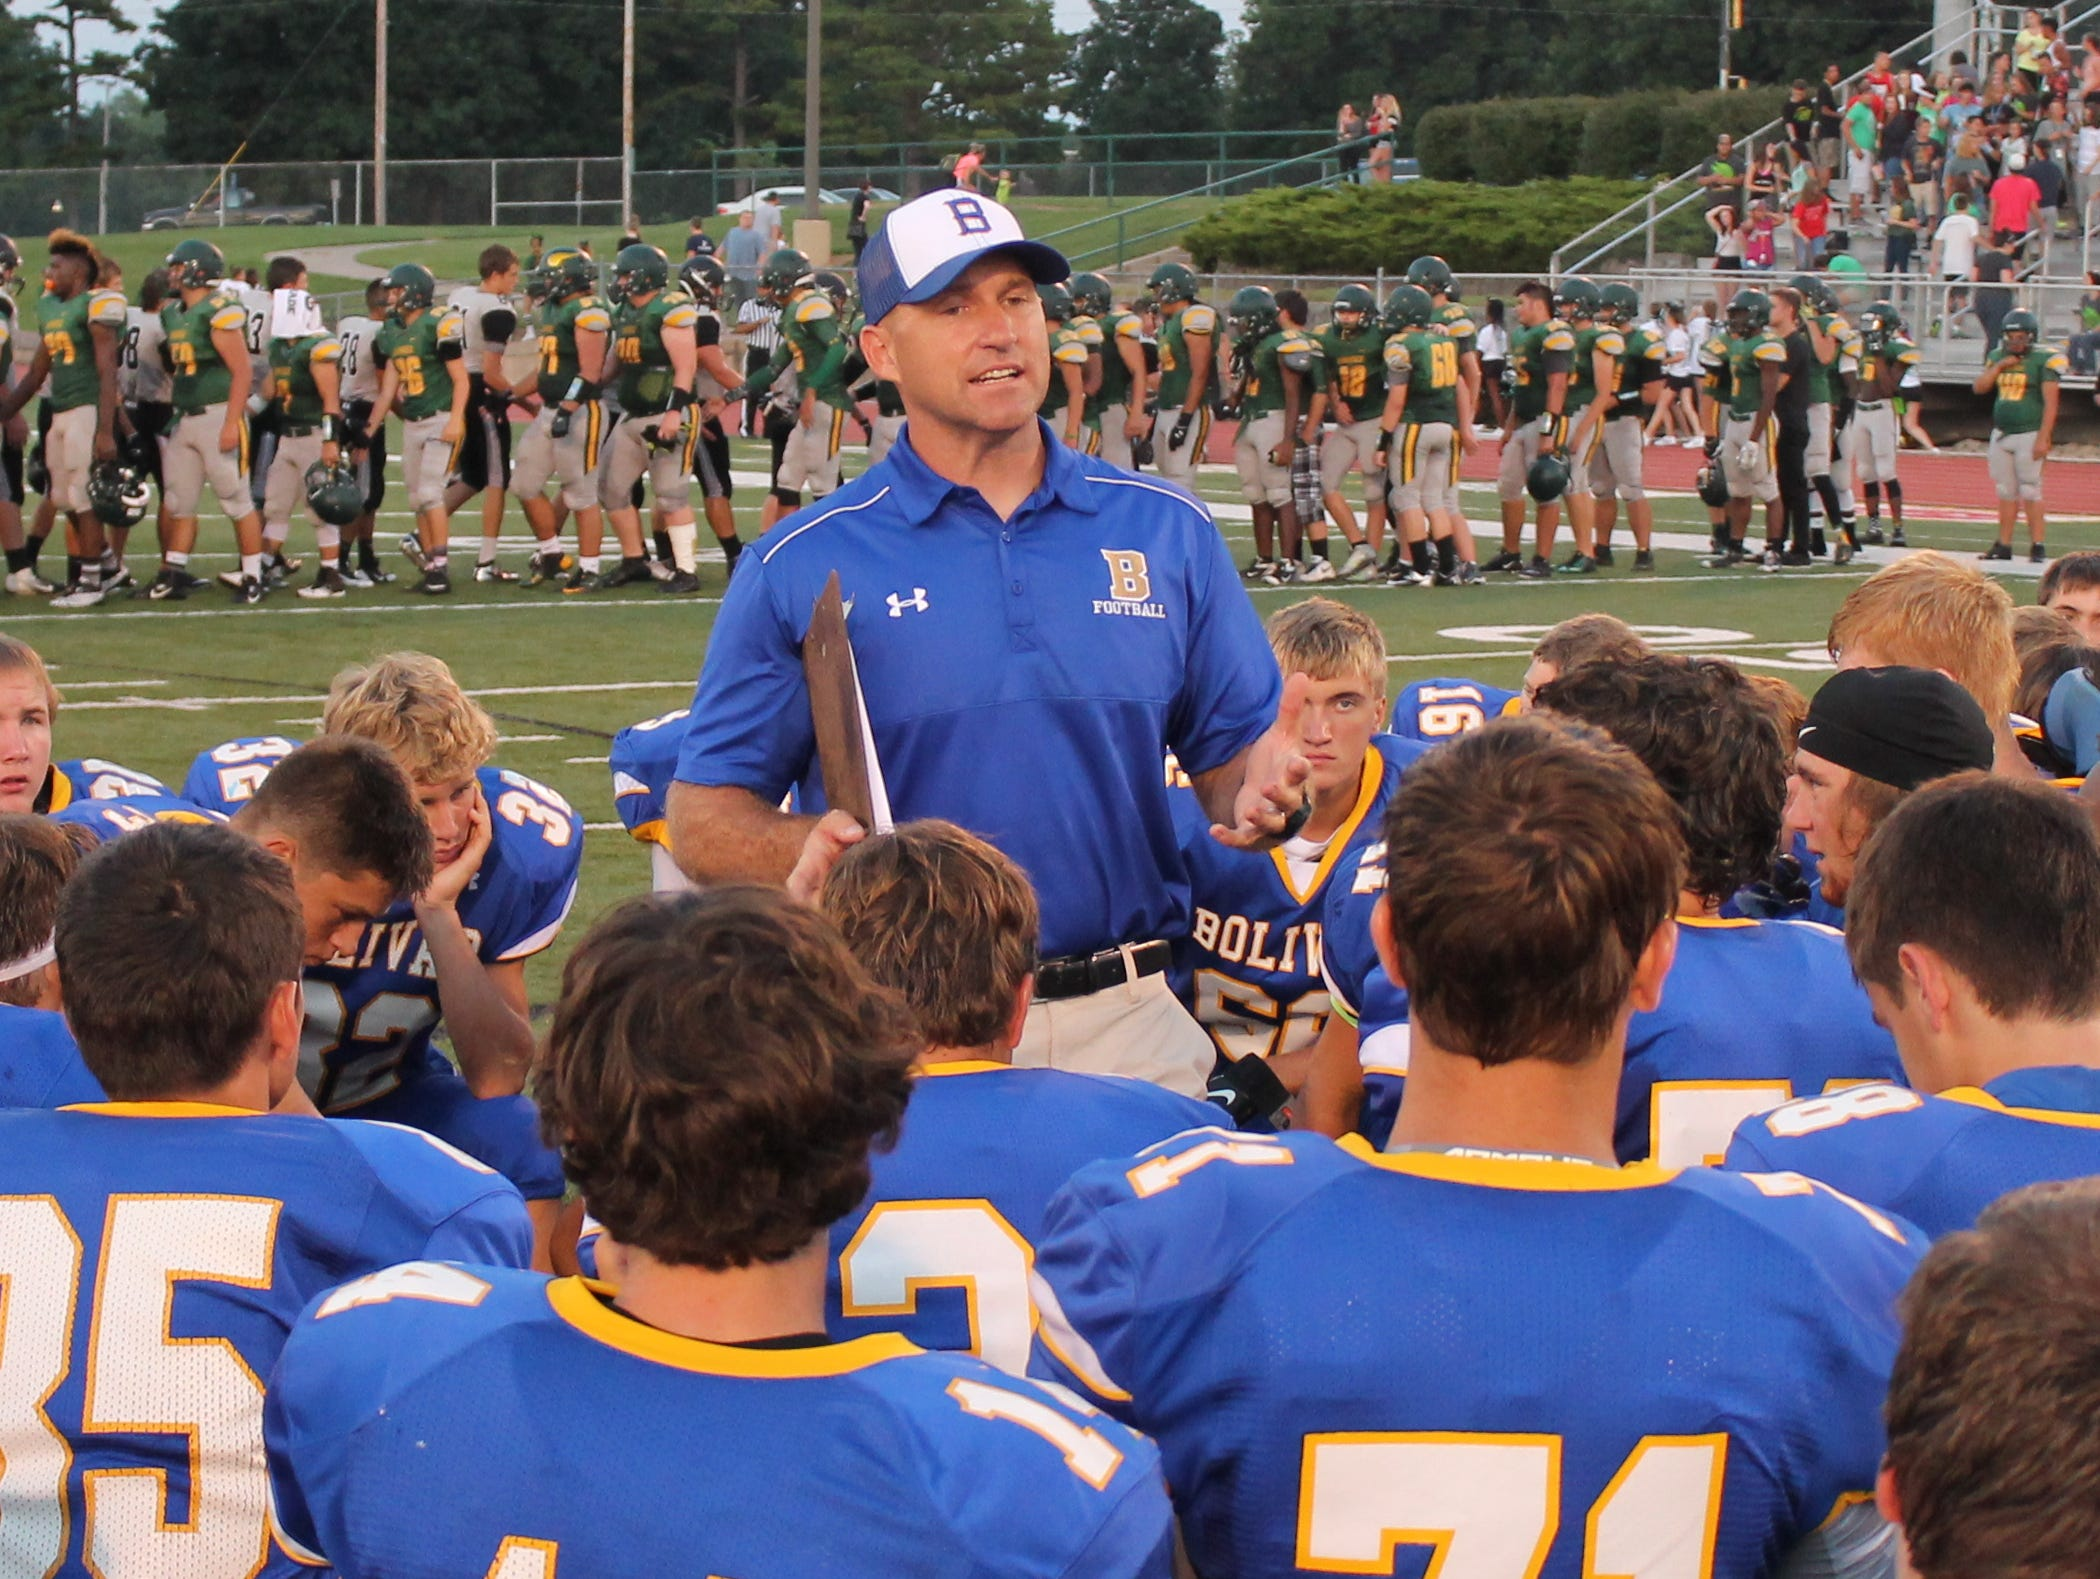 Coach Lance Roweton (standing) and the Bolivar Liberators enter the final week of the 2015 regular season ranked No. 10 in the Class 4 Missouri Media Rankings.